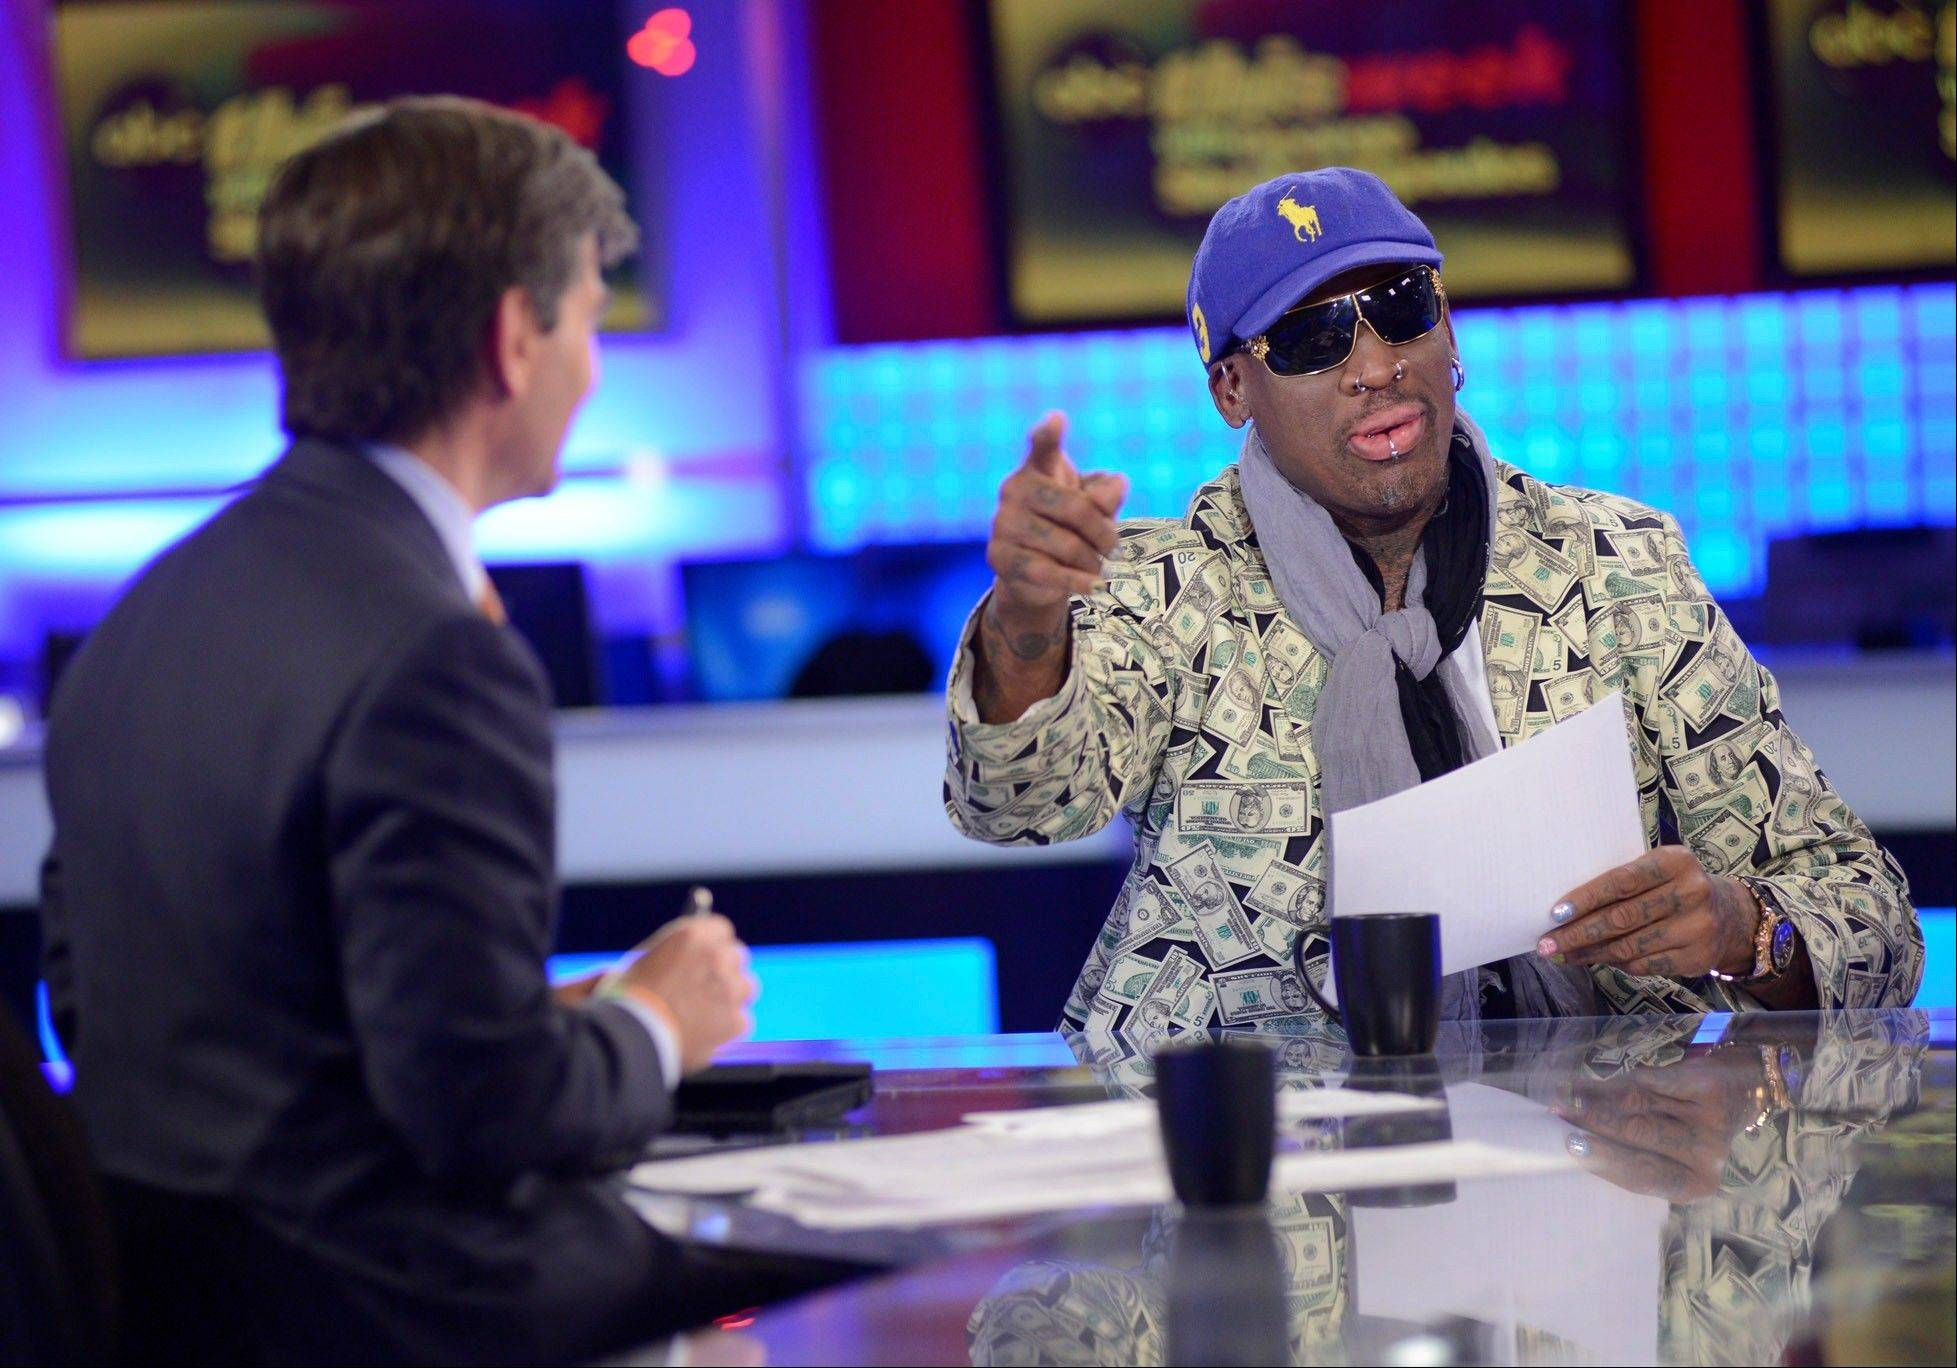 """This Week"" host George Stephanopoulos, left, interviews former NBA star Dennis Rodman, just back from a visit with North Korea's young leader Kim Jong Un."